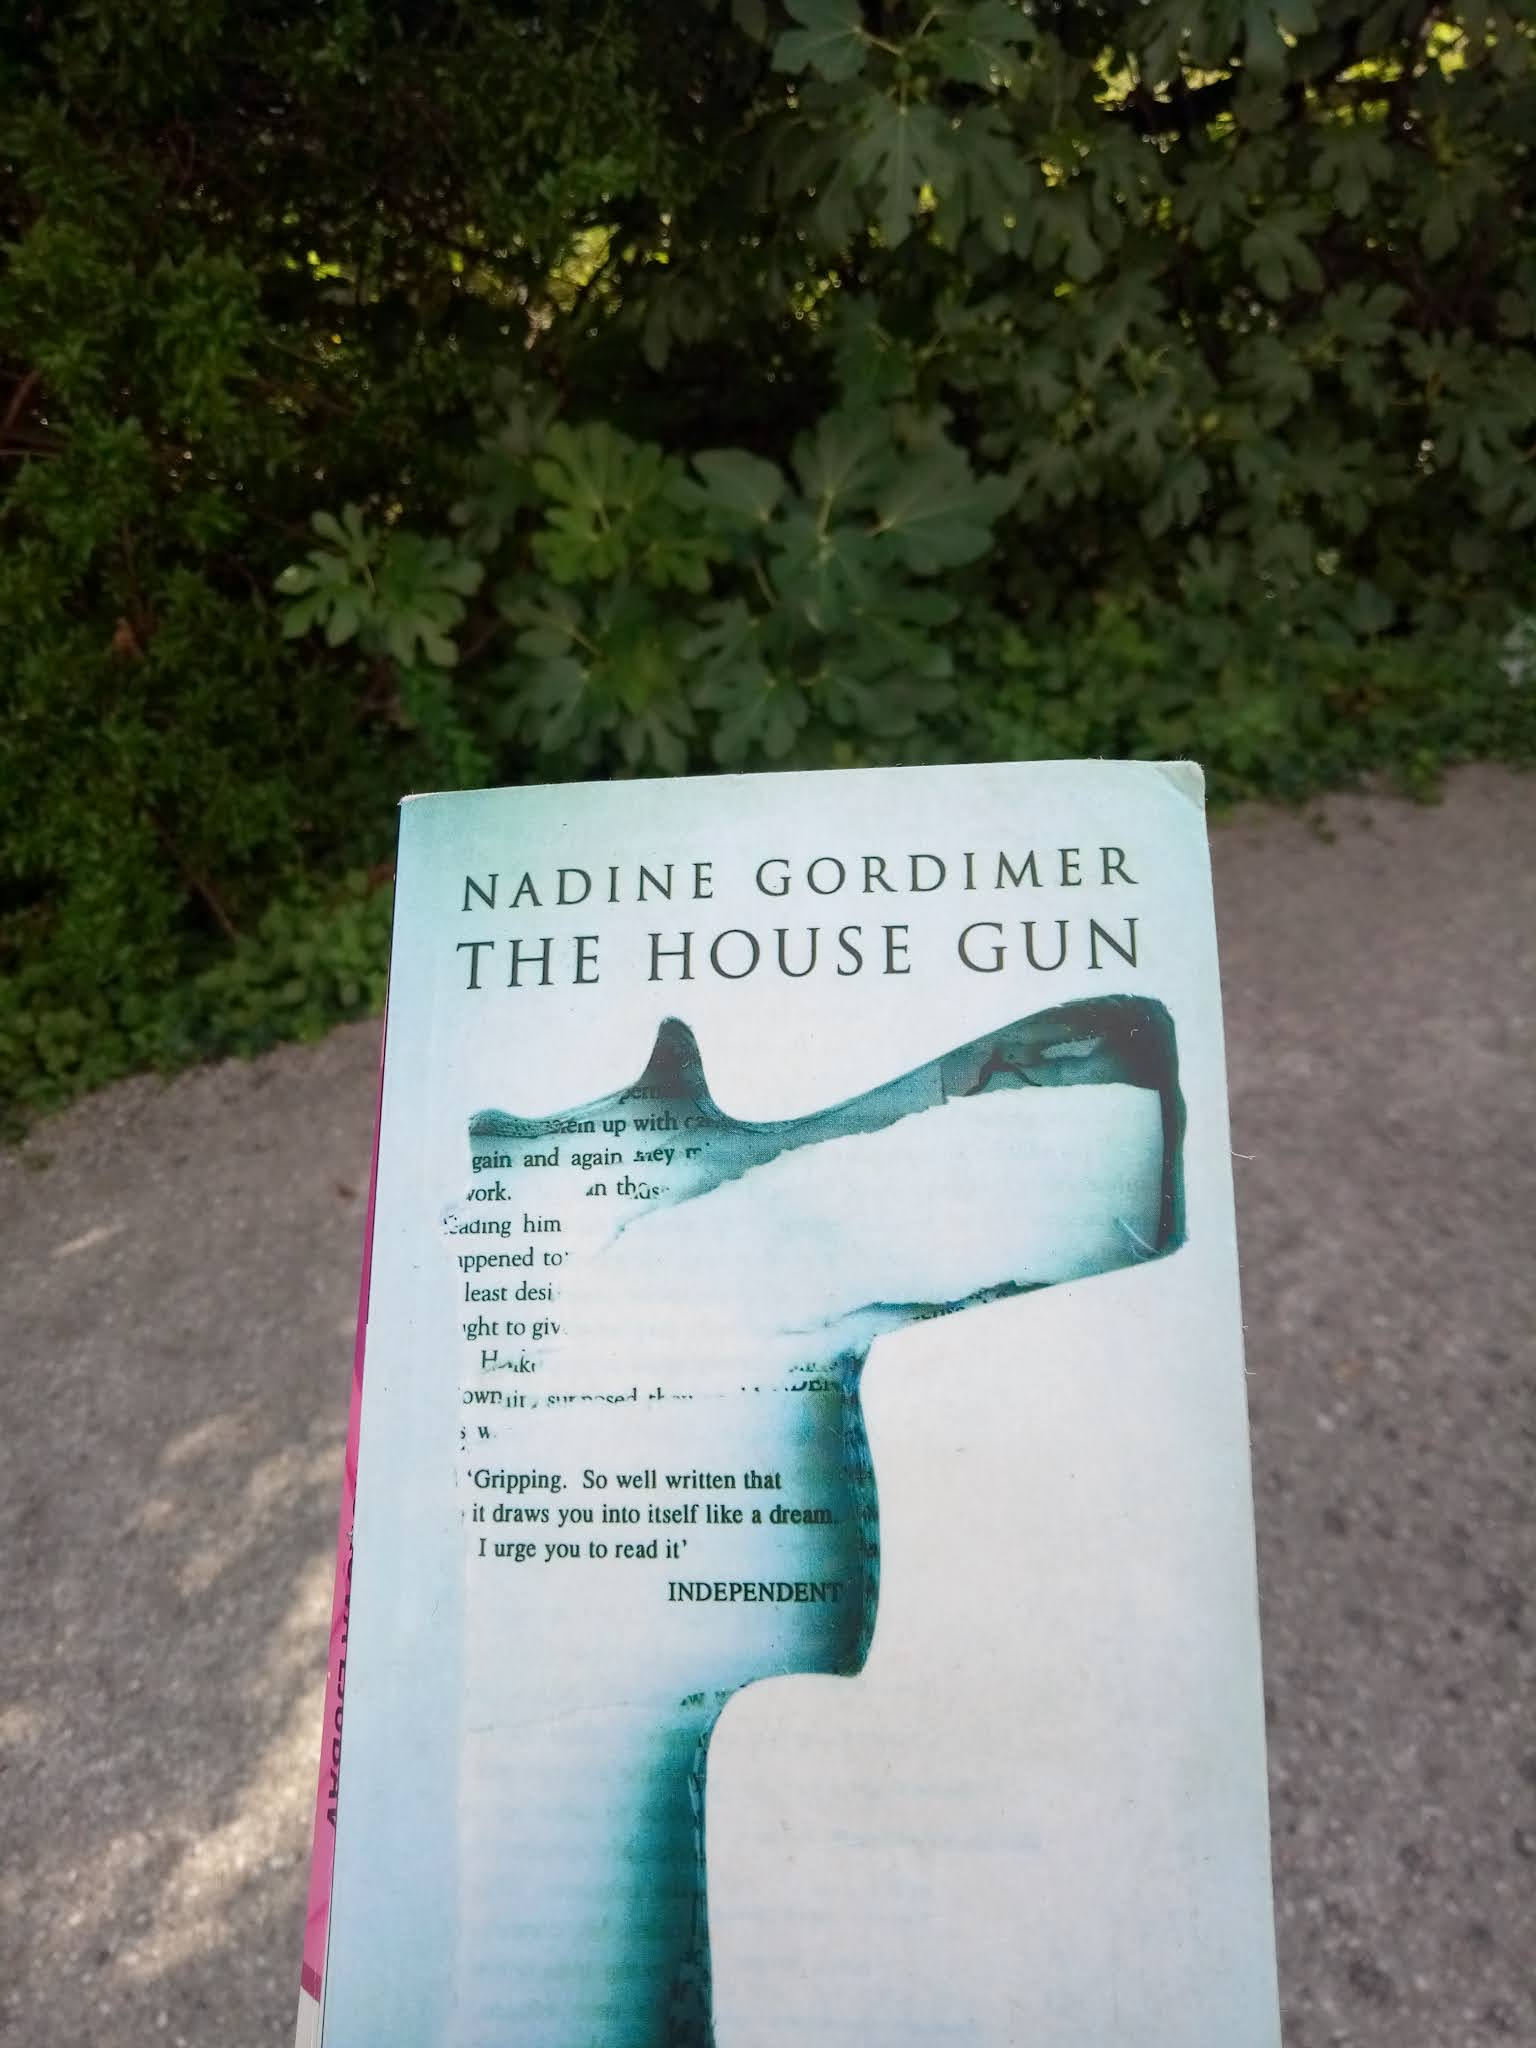 THE HOUSE GUN BY NADINE GORDIMER & THE WRONG SIDE OF GOODBYE BY M.CONNELLY (BOOK REVIEWS)